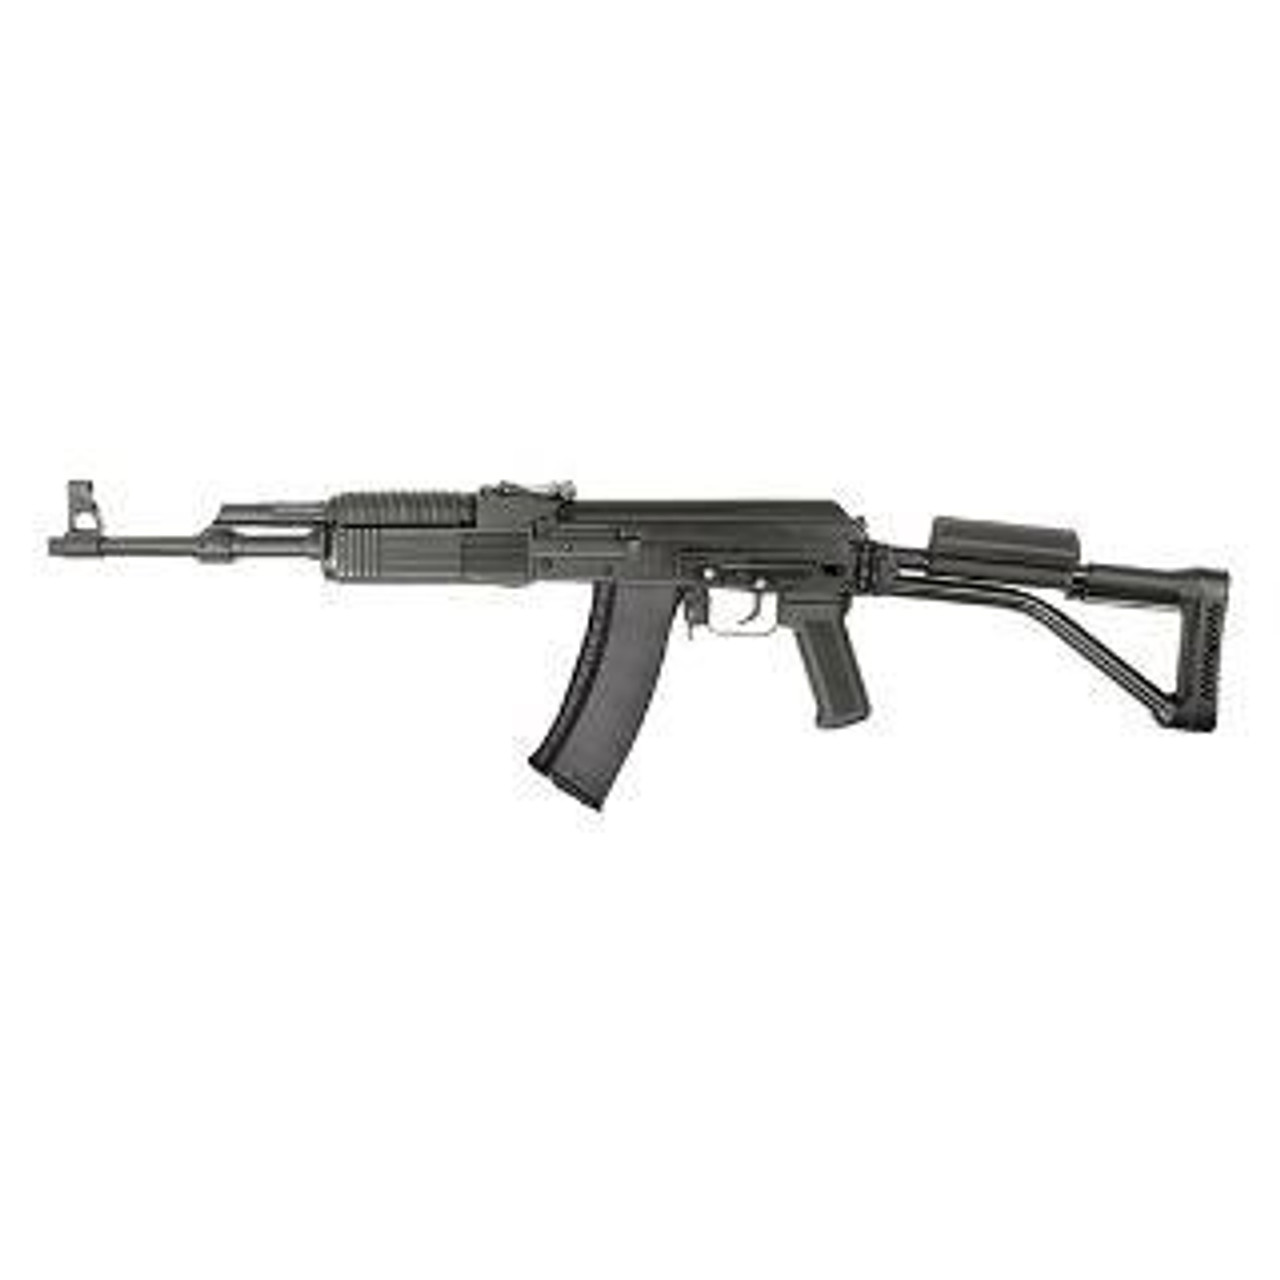 Molot/VEPR AK-74-11-Side Folder CALIFORNIA LEGAL - 5.45x39